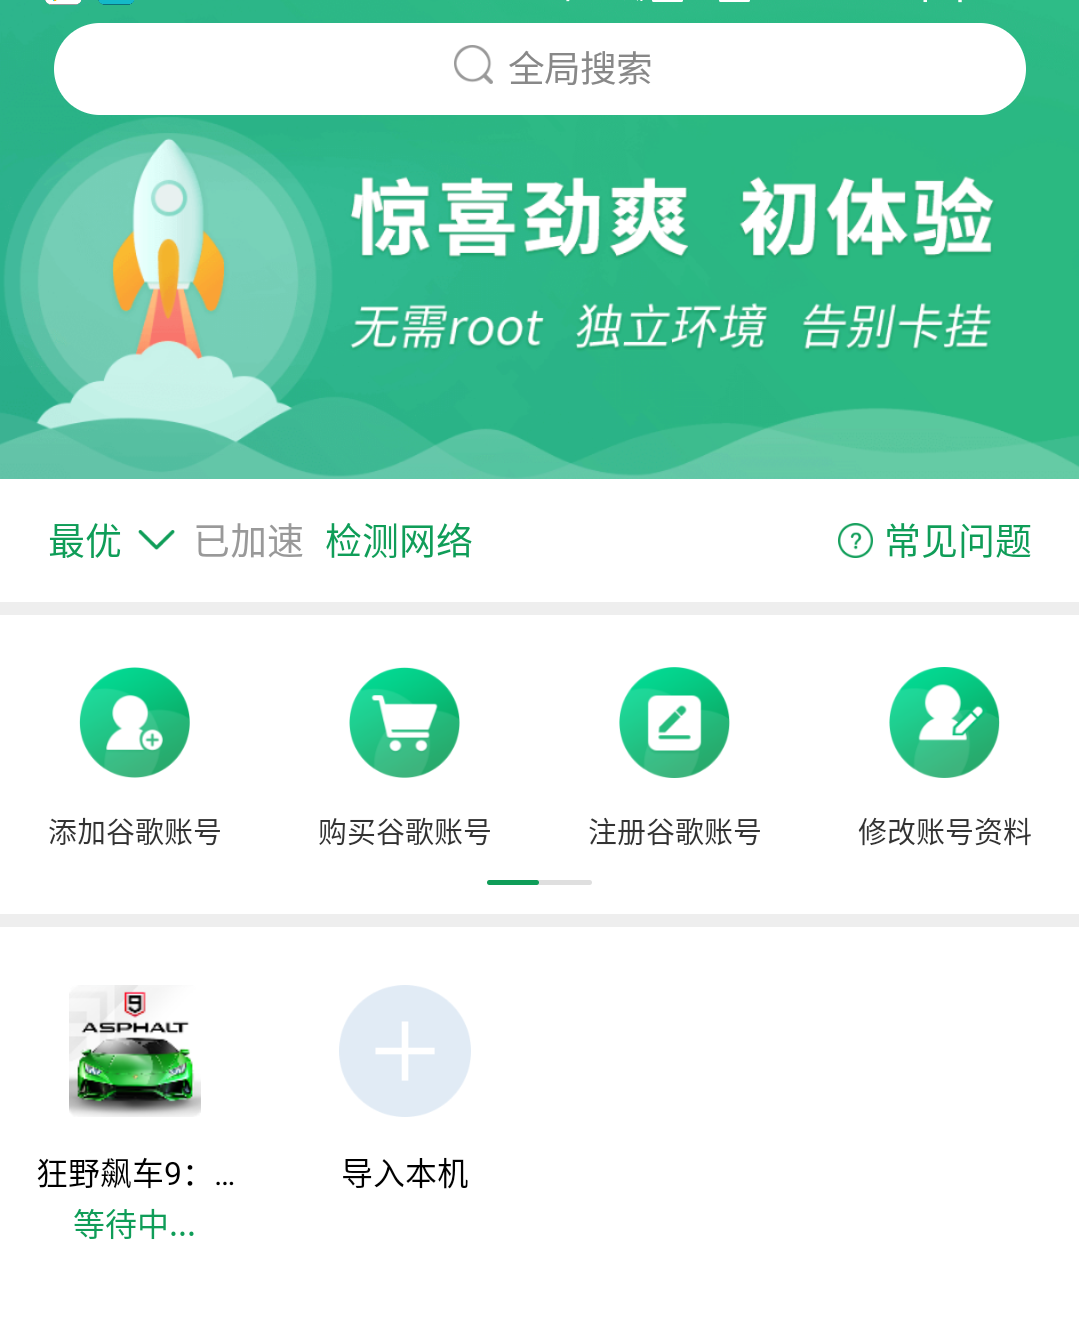 新建文件夹 (2)Screenshot_2019-03-27-18-17-04-067_com.excean.gsp.png